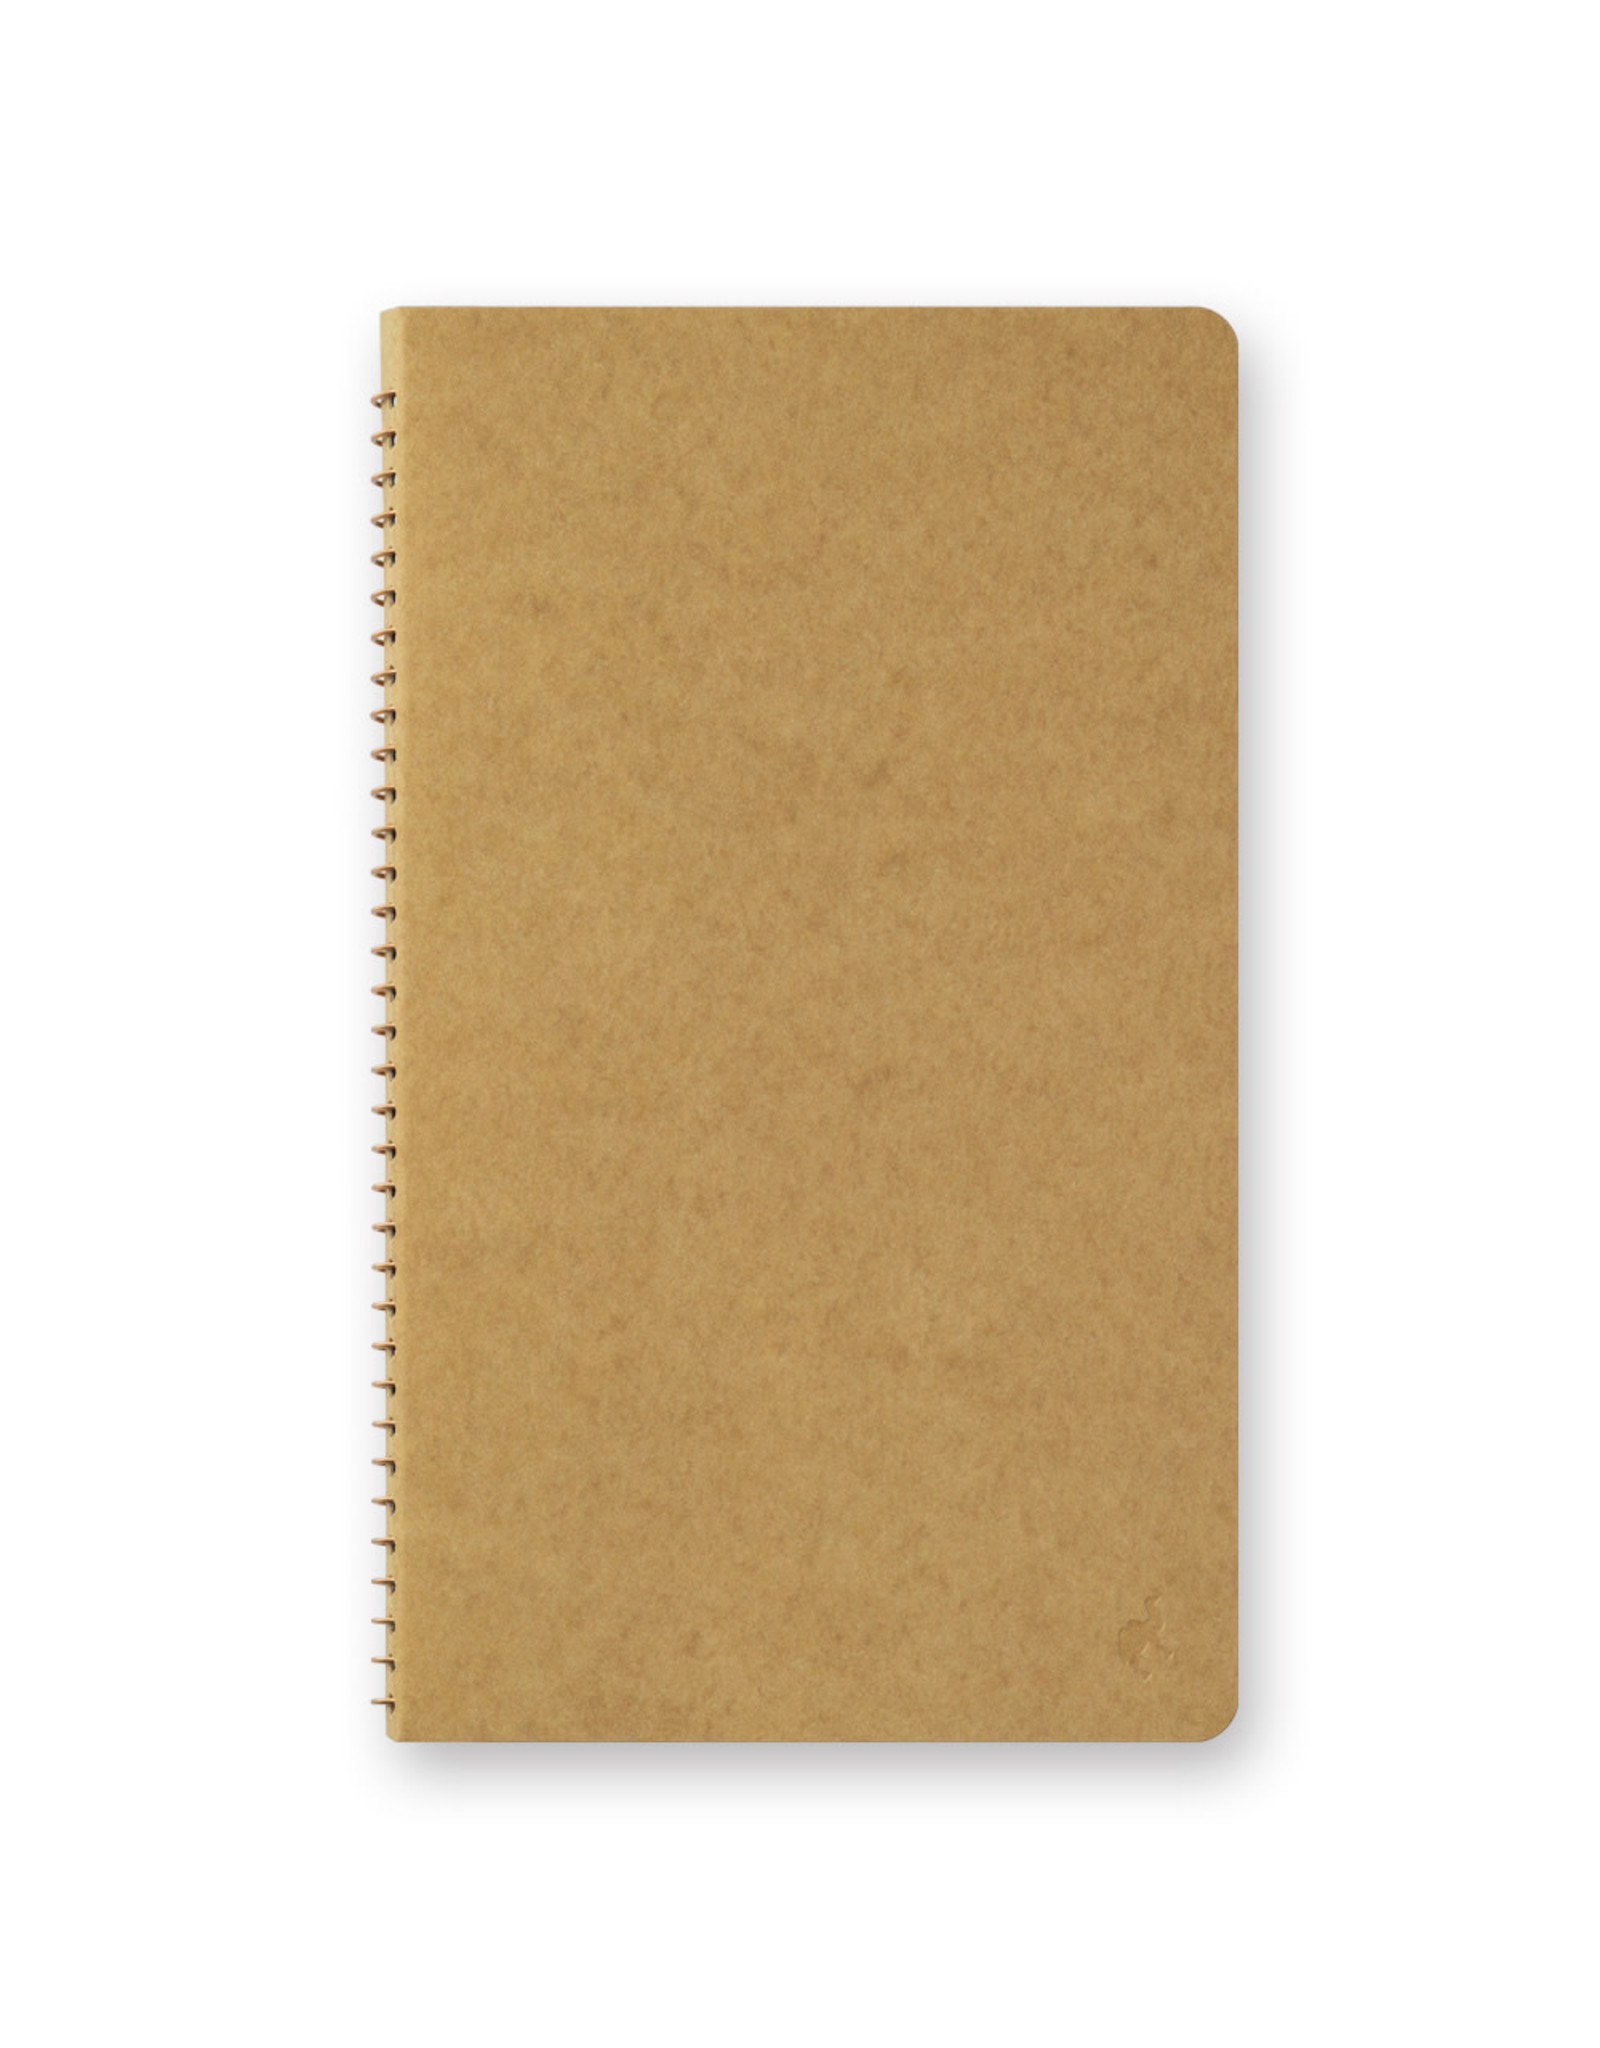 Traveler's Company TRC SPIRAL RING NOTEBOOK  DW KRAFT